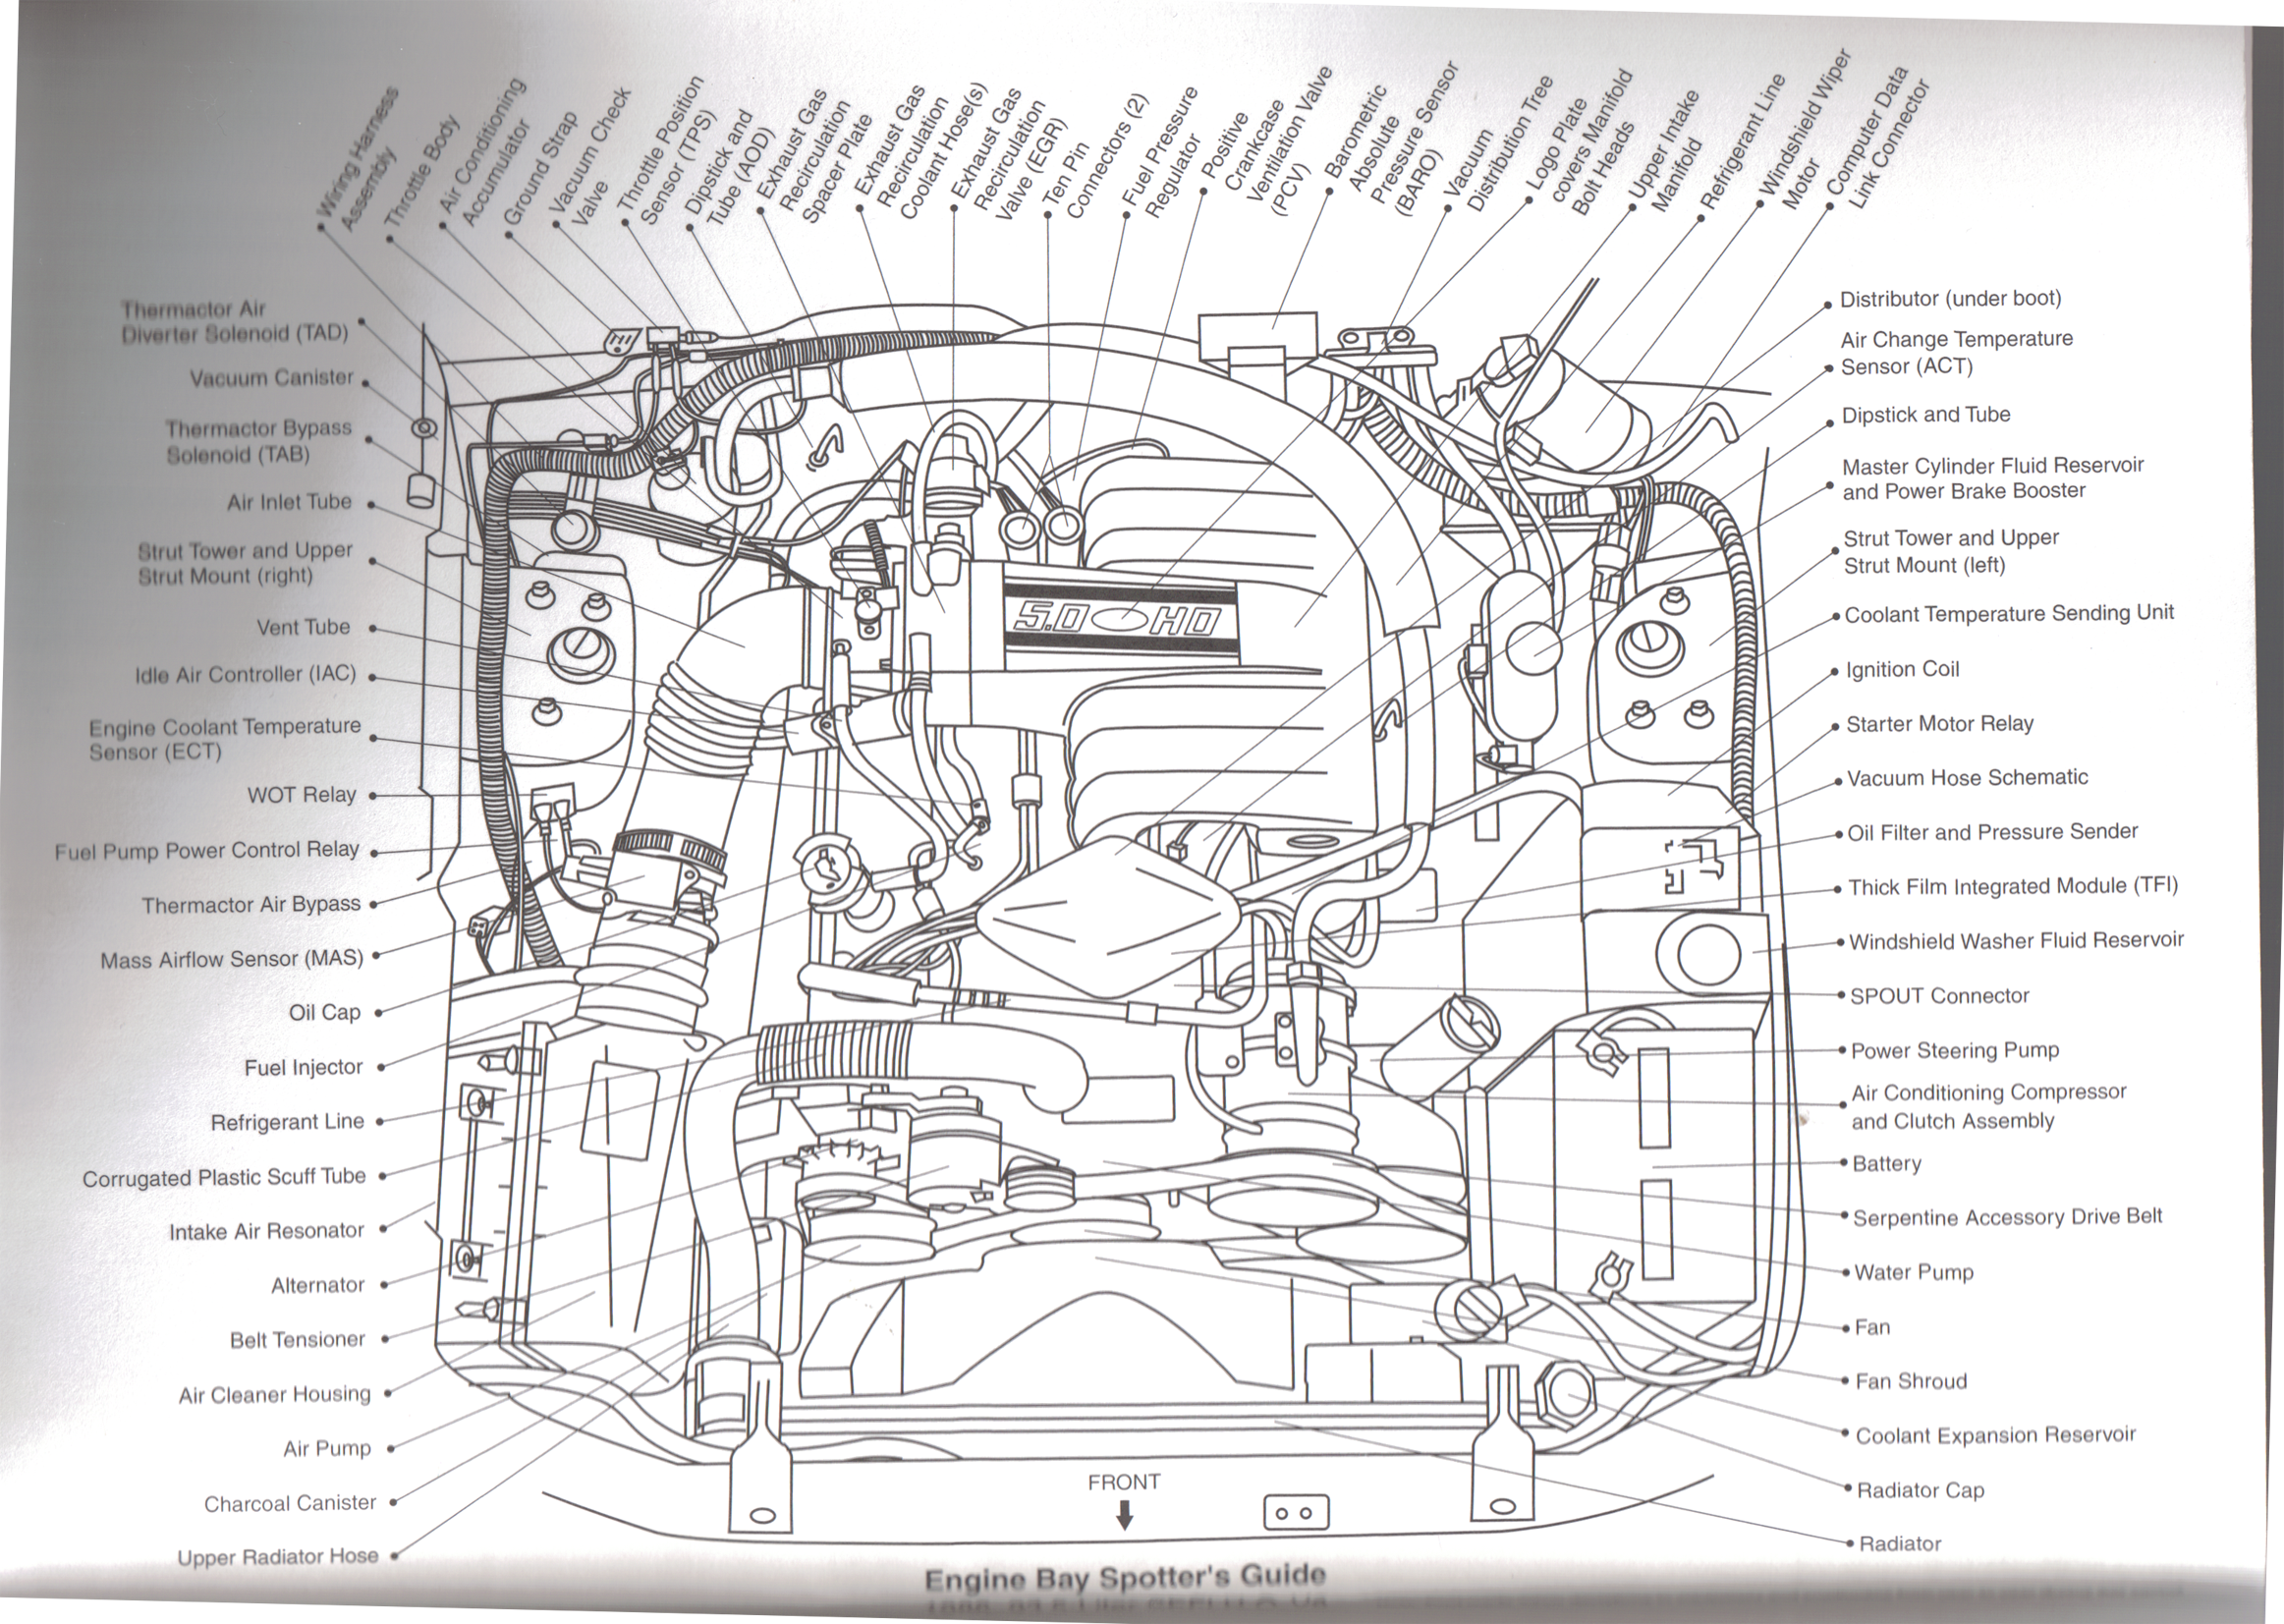 1990 Ford 302 Engine Diagram Wiring Data 95 Mustang Everything You Need To Know About 1979 1993 Foxbody Mustangs F 150 Motor